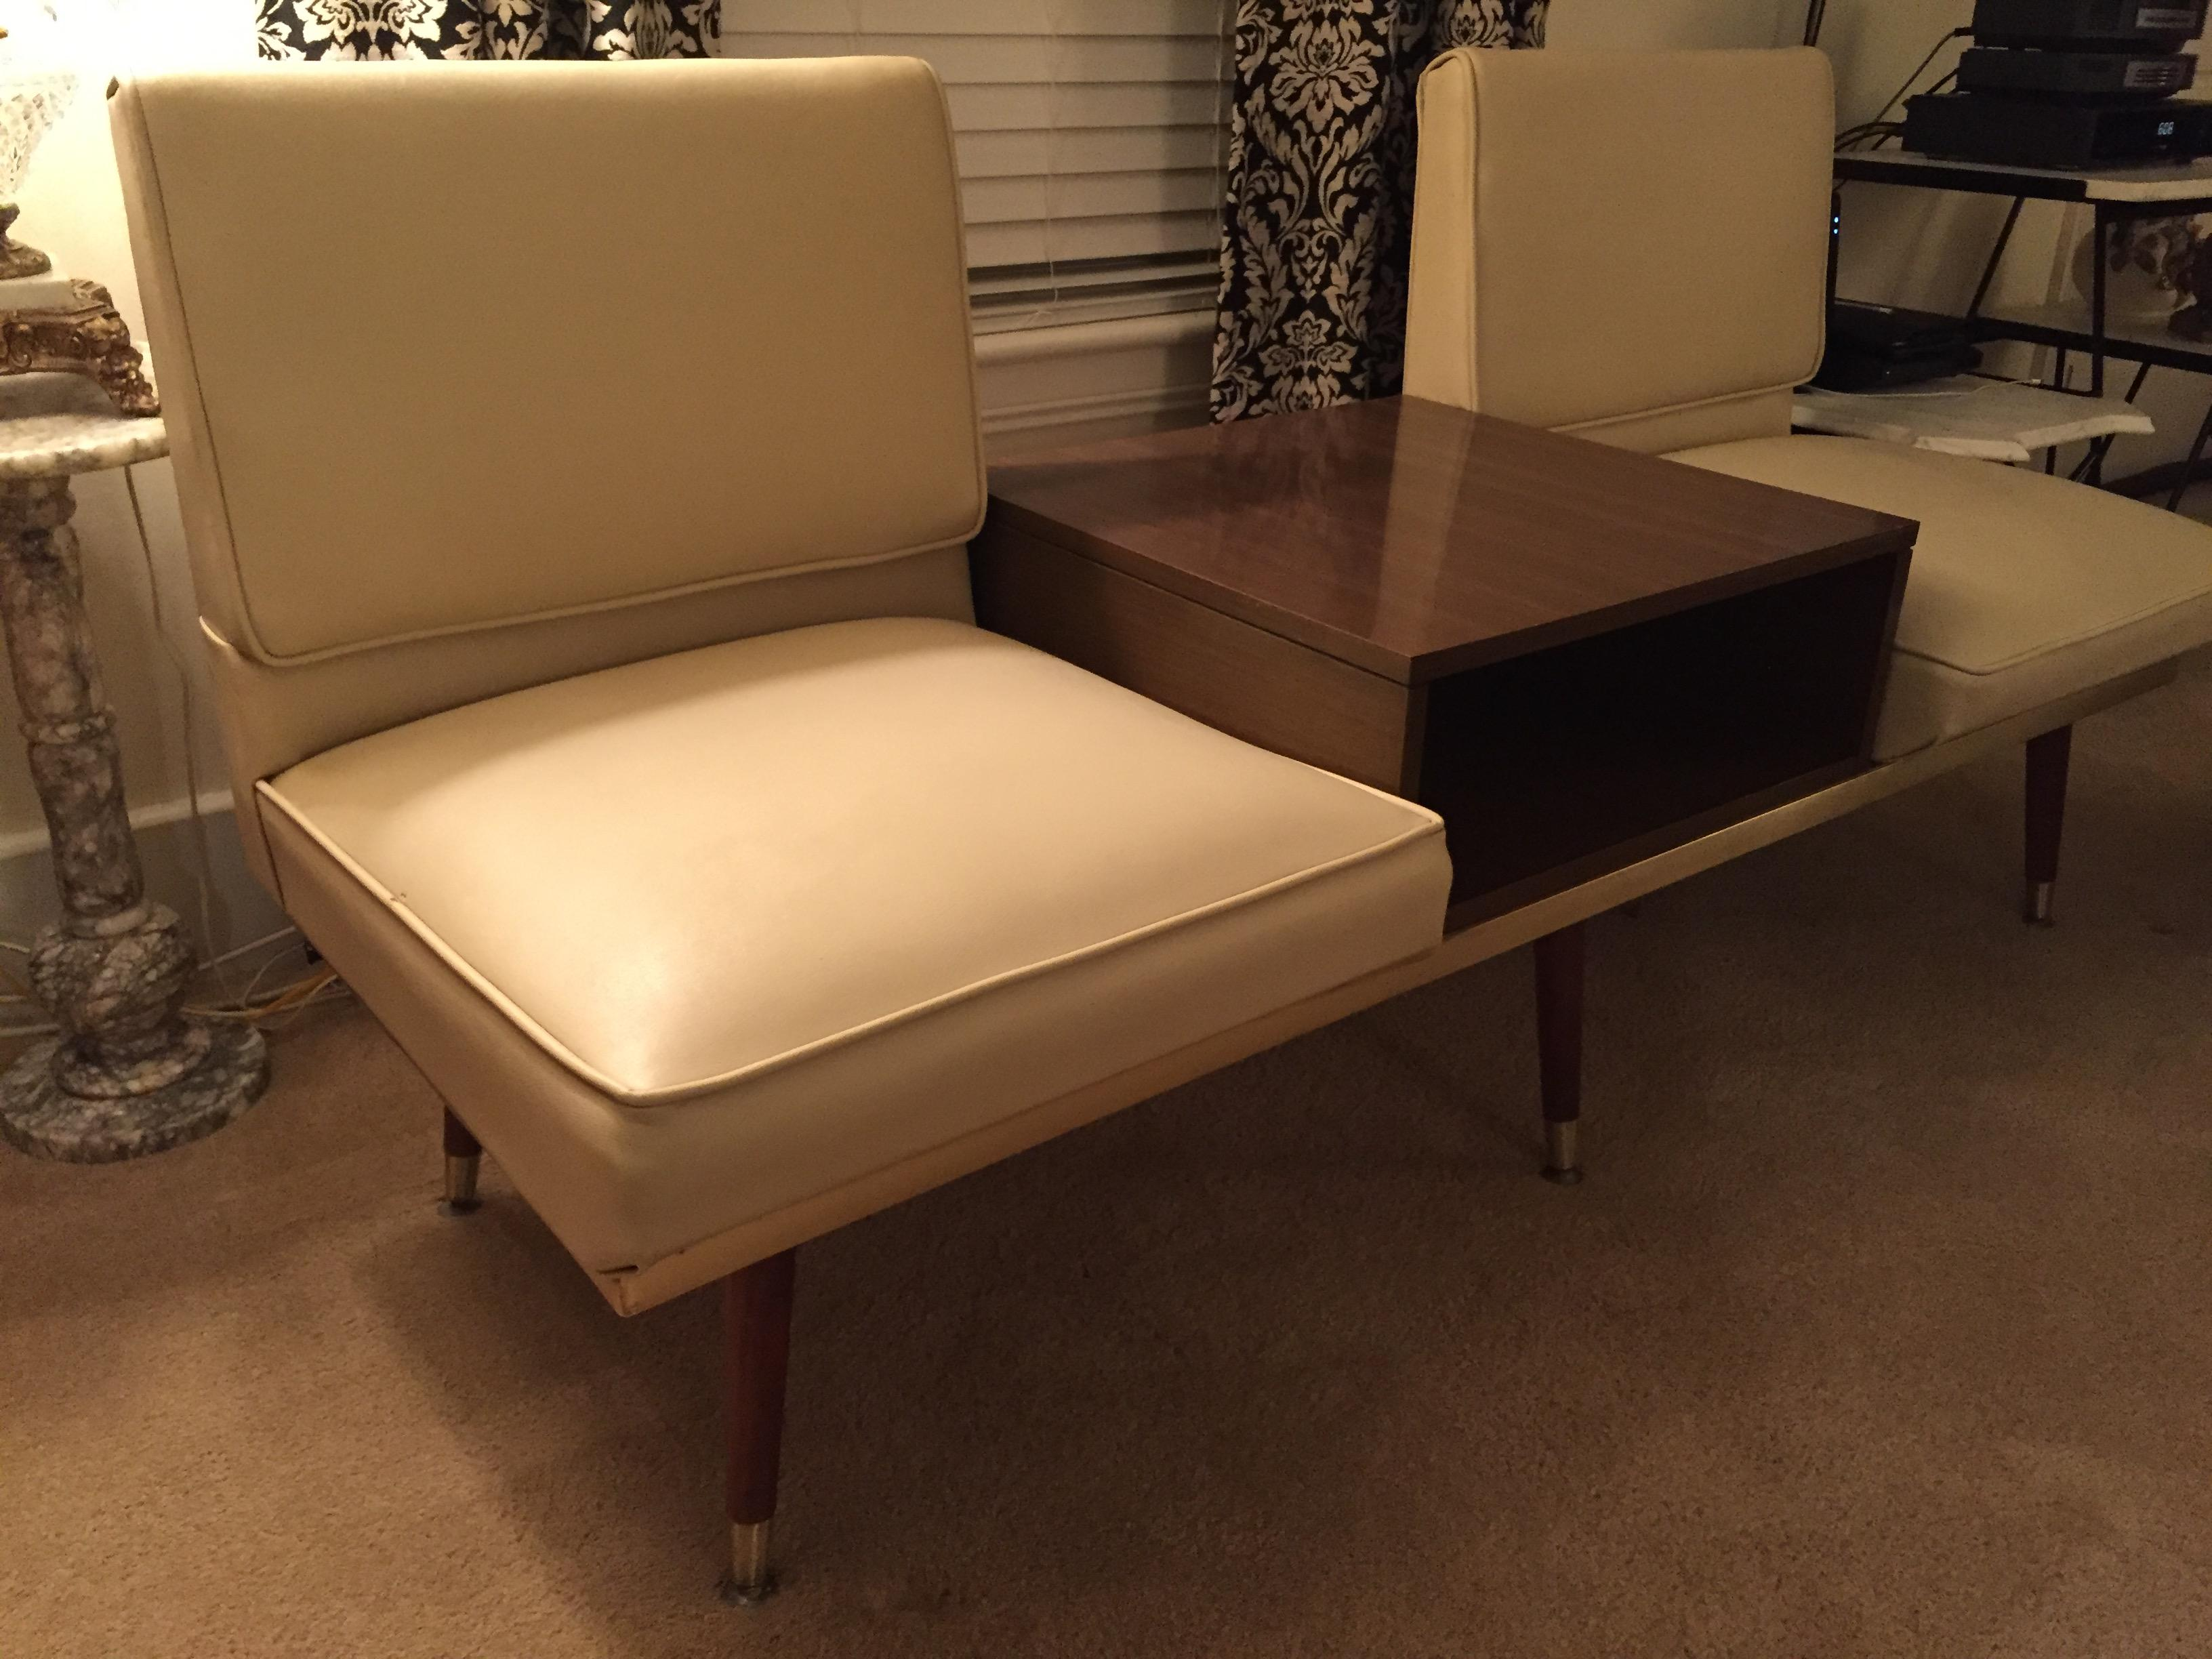 Murphy Miller Kroehler Midcentury Two Seat Sofa Bench With Center